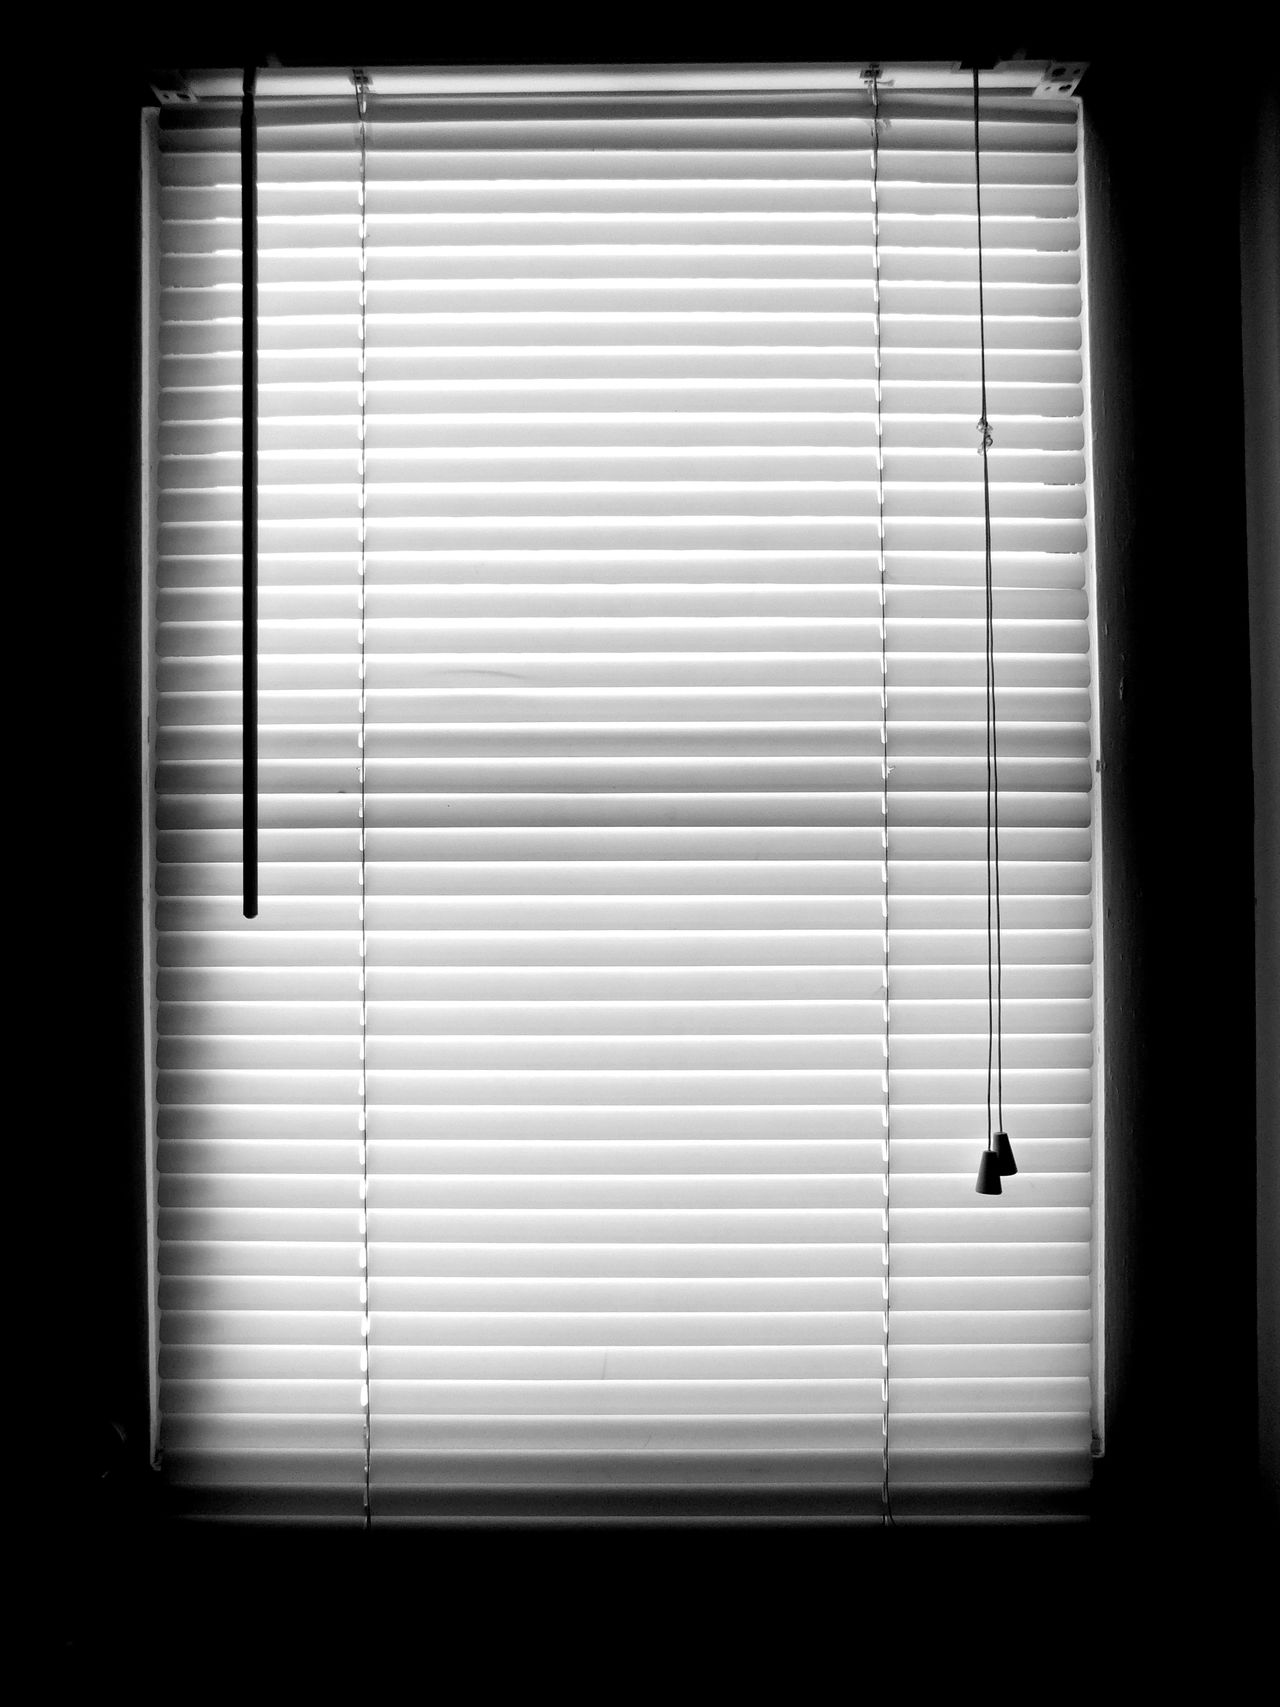 Monochrome Photography Window Blackandwhite Darkness And Light Light And Shadow Texture Pattern Pieces Blinds Lines Random Acts Of Photography Notes From The Underground Textures And Surfaces Full Frame Indoors  Shapes , Lines , Forms & Composition Lines And Angles EyeEm Best Shots - Black + White Close-up Lines And Shapes Shadow And Light EyeEm Nikon Floridaphotographer In A Row Maximum Closeness